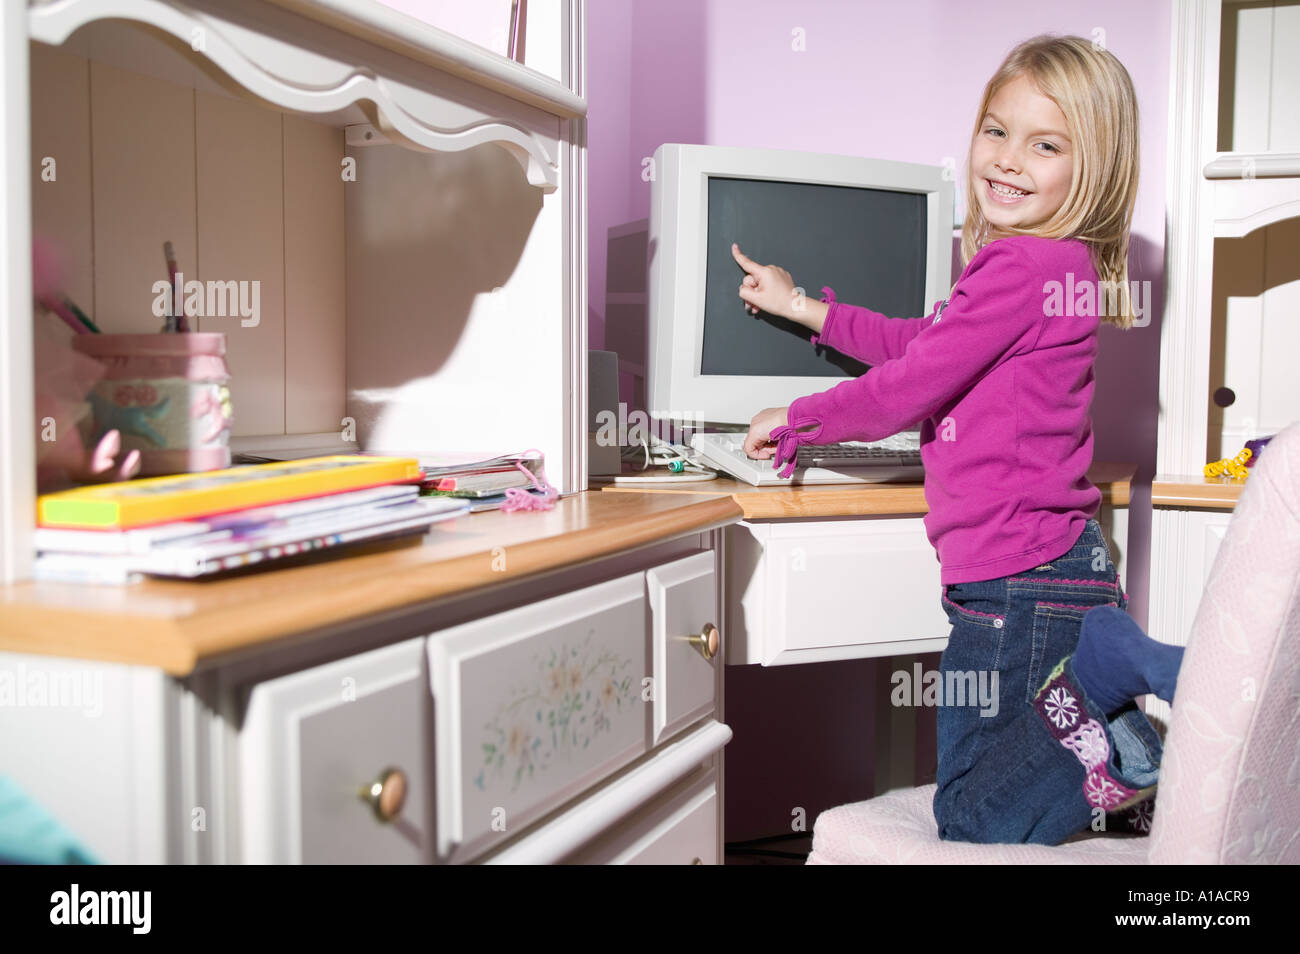 Girl pointing at computer screen - Stock Image